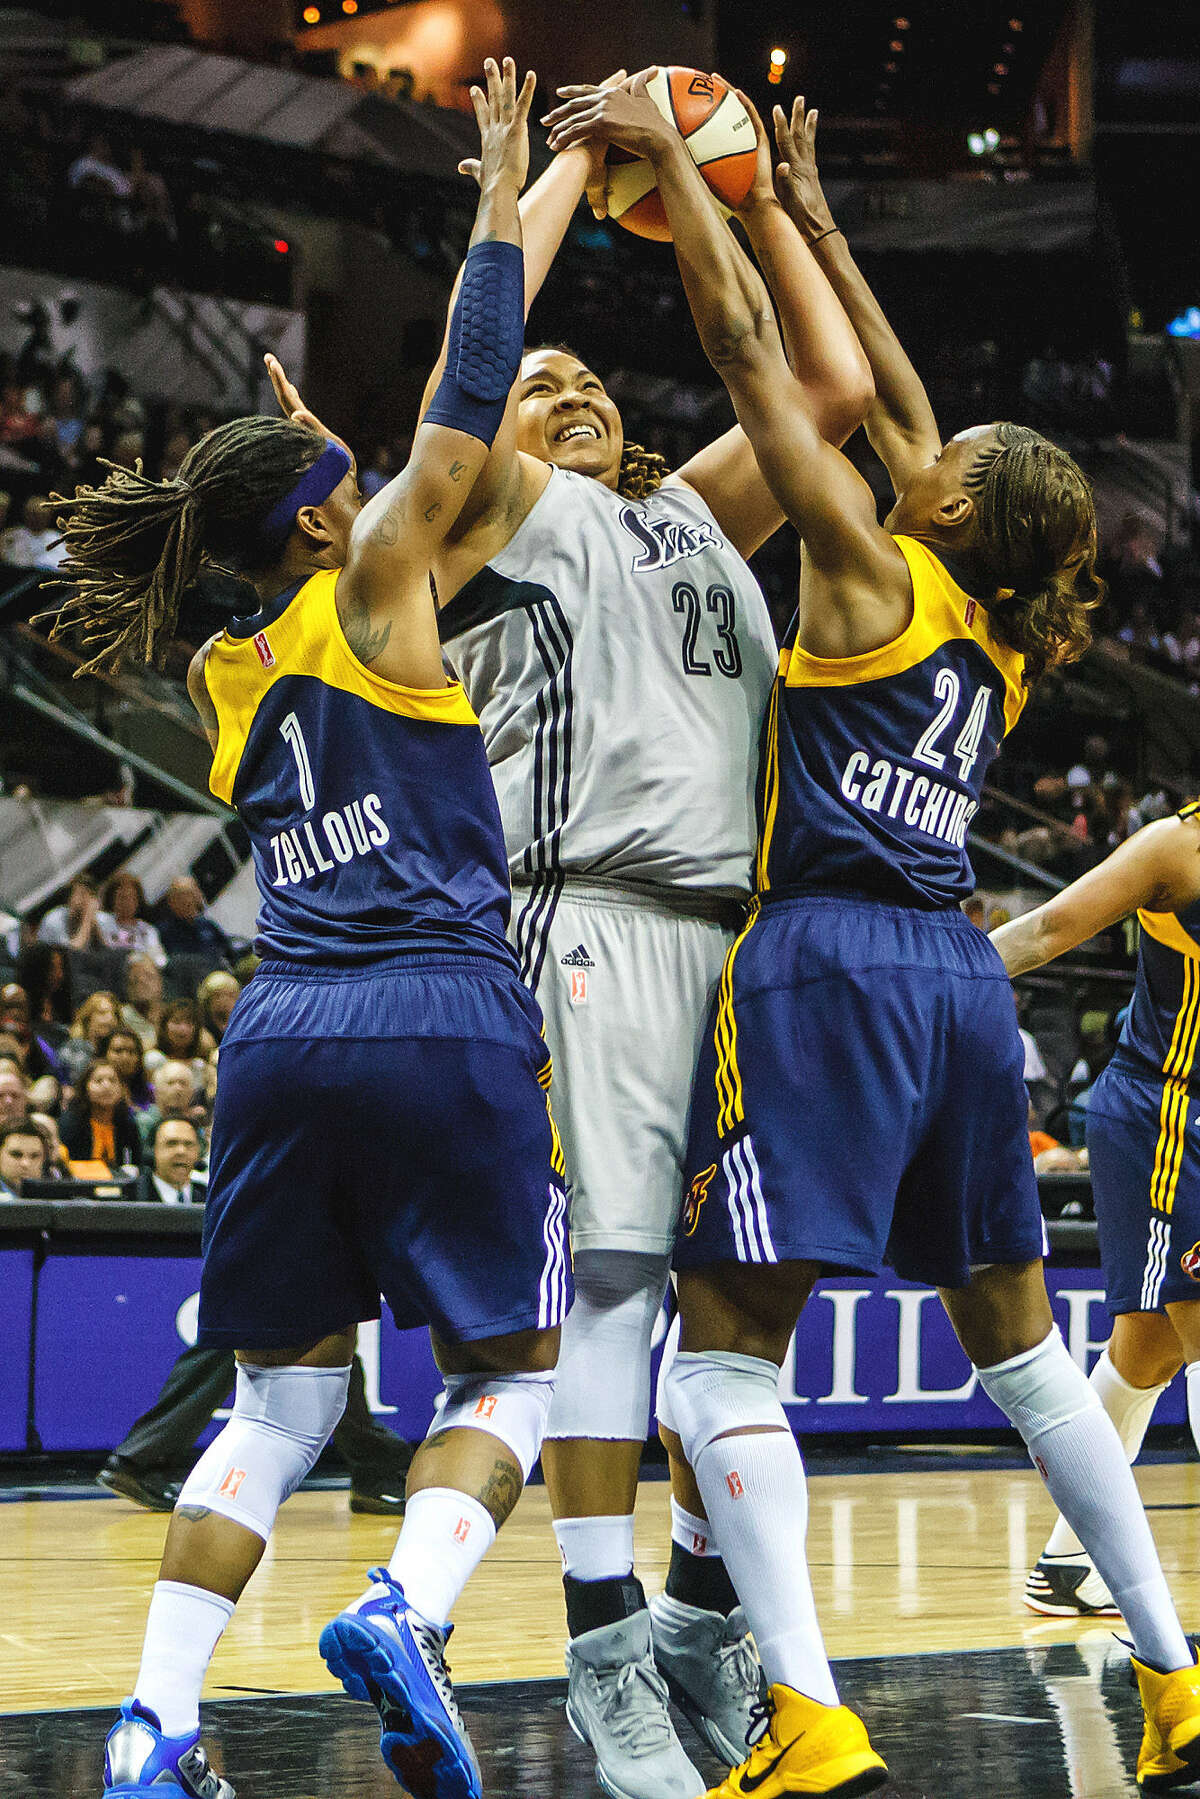 Shavonte Zellous (left) and Tamika Catchings, who each scored 19 points for Indiana, defend the Silver Stars' Danielle Adams.